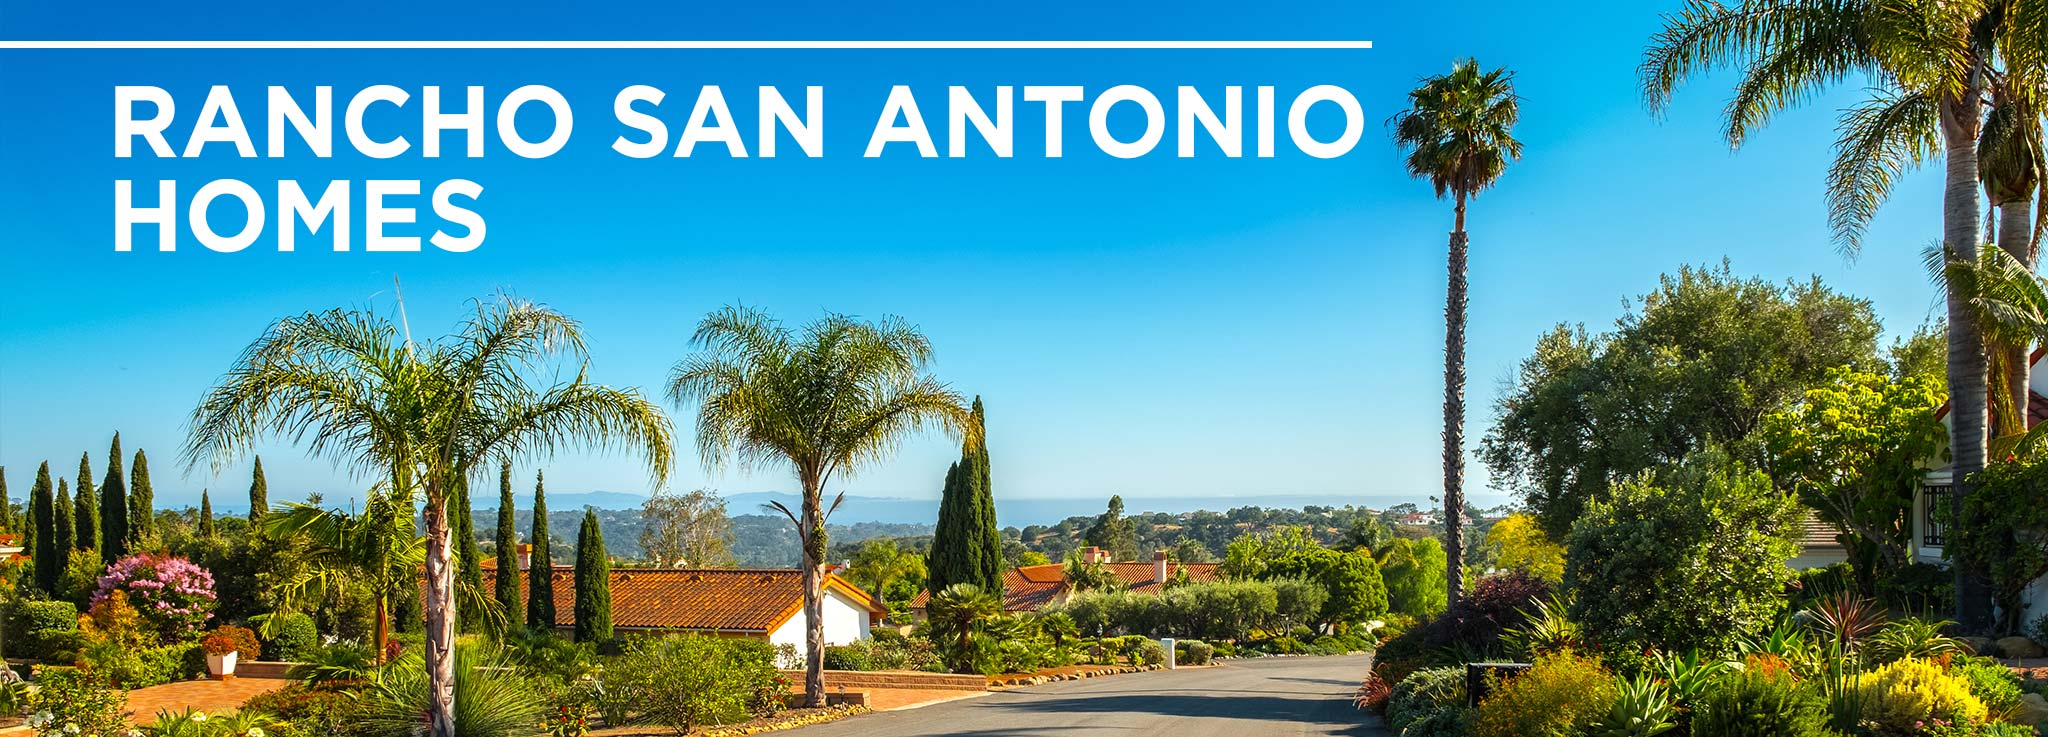 Homes for sale in Rancho San Antonio